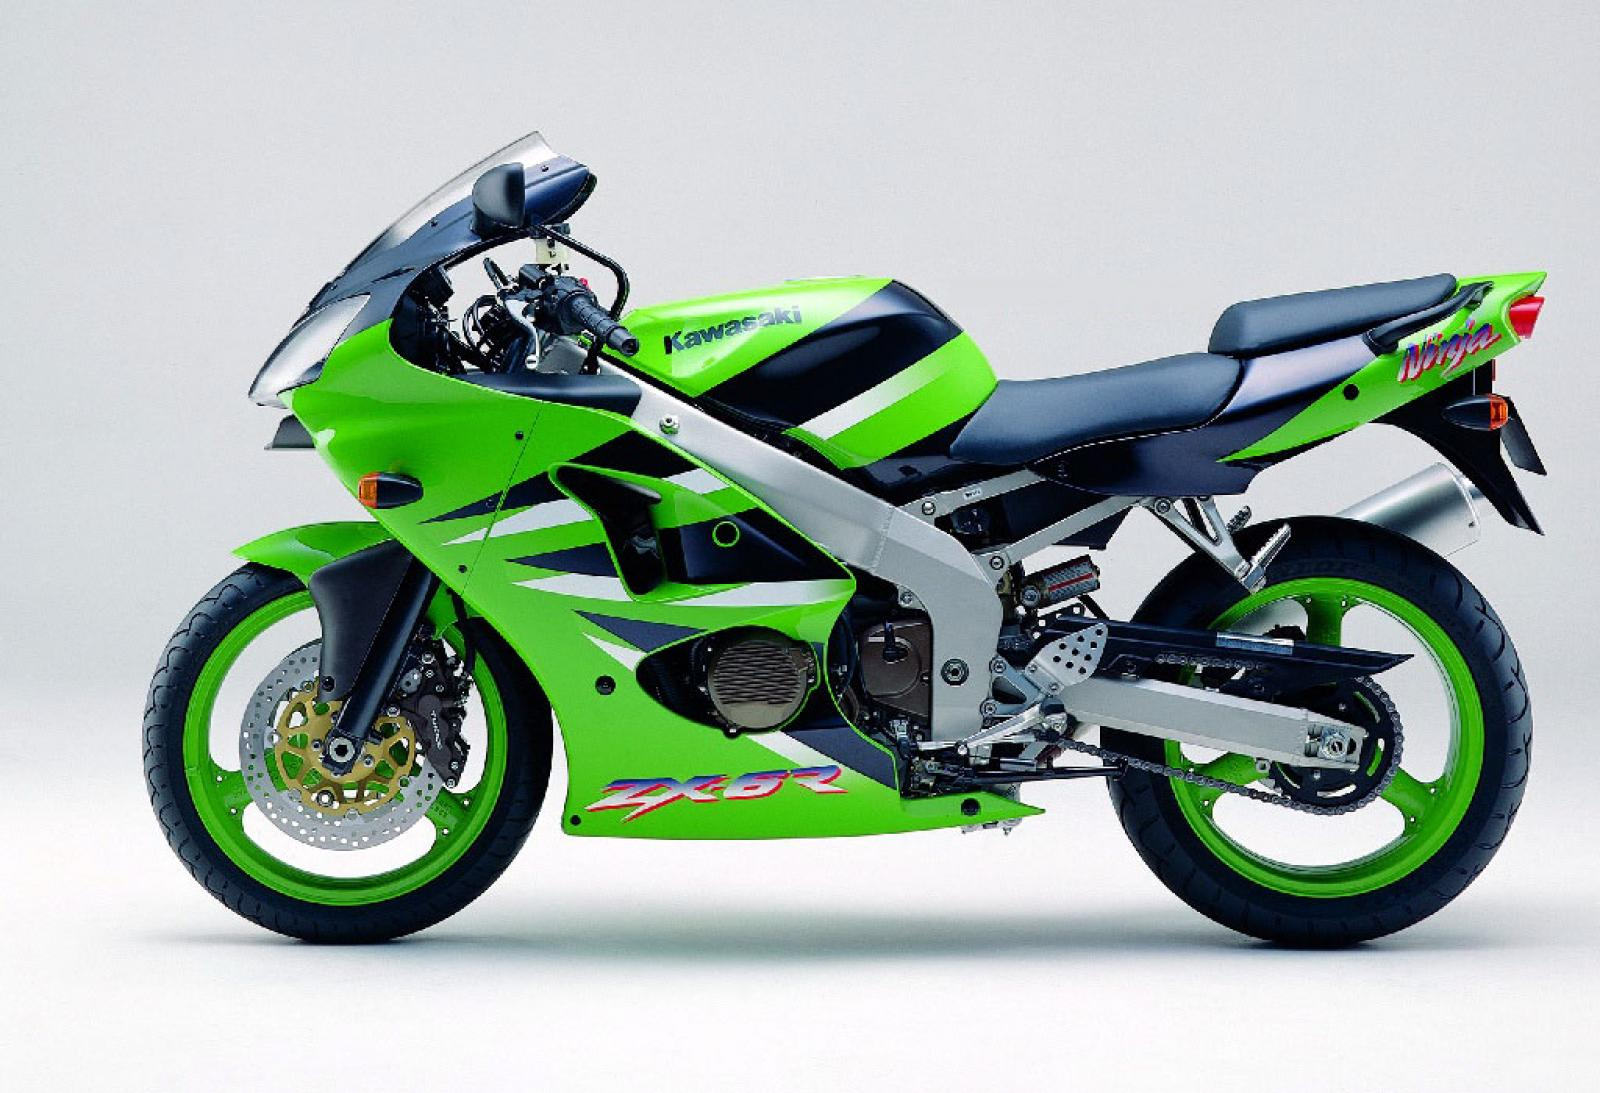 1999 kawasaki zx 6r ninja moto zombdrive com. Black Bedroom Furniture Sets. Home Design Ideas